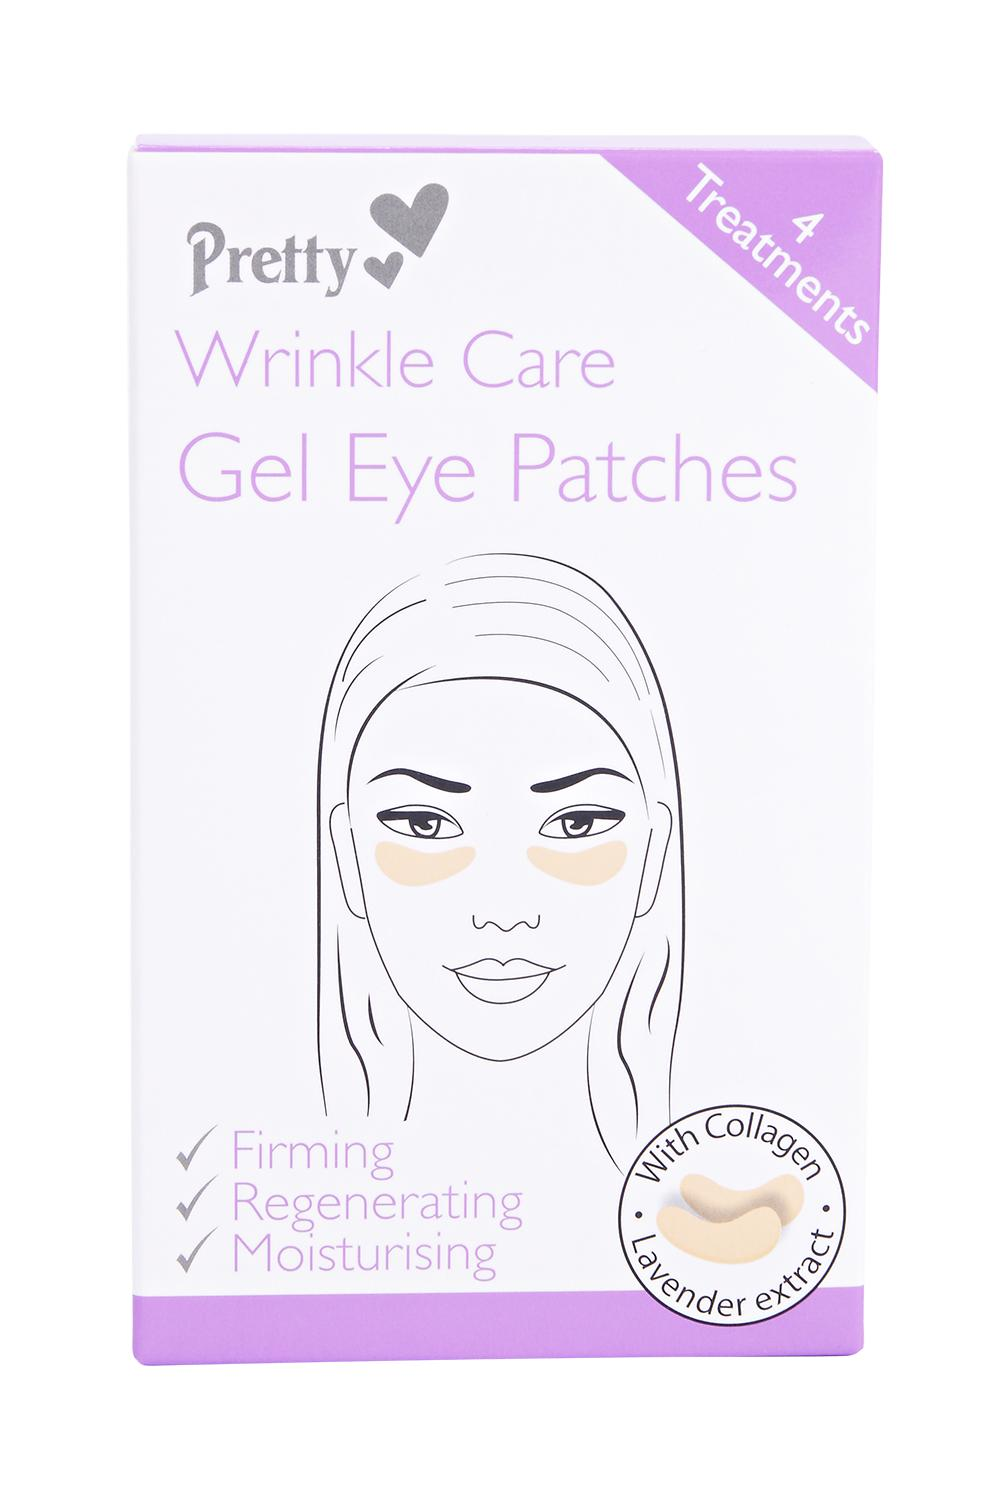 Wrinkle Care Gel Eye Patches